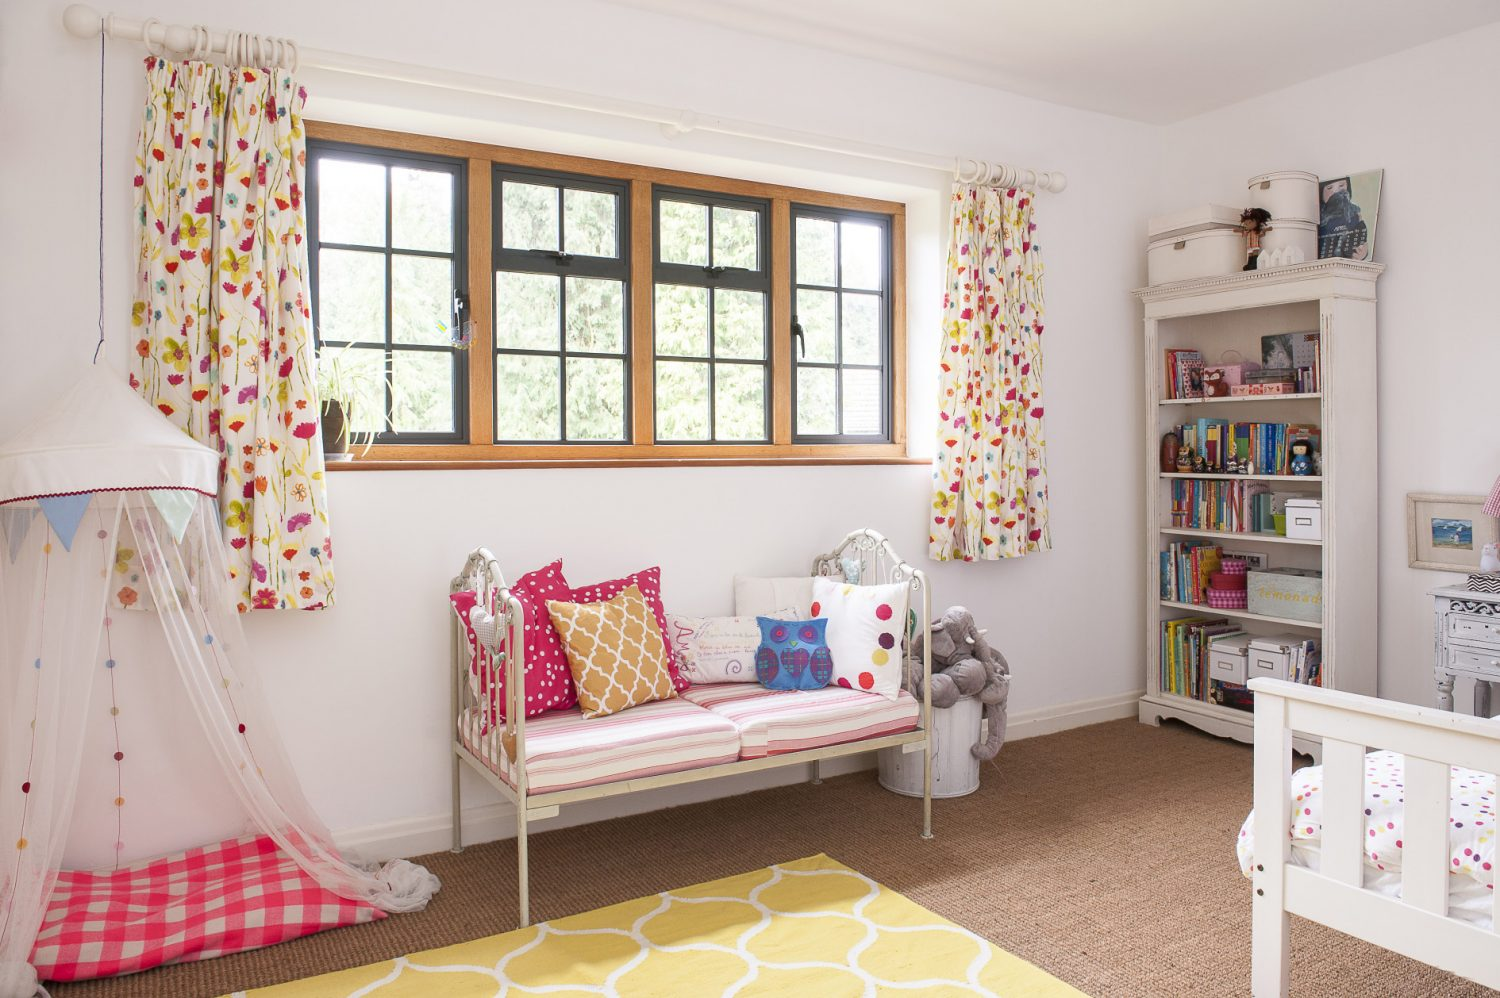 Amber's room is painted in a 'simple white' but livened up with bright and cheerful fabrics. Kate, rescued the miniature wrought iron day bed from a florist's shop, where it was being used for display. Original oak mullion windows throughout the house are a reminder of its 1920s origin